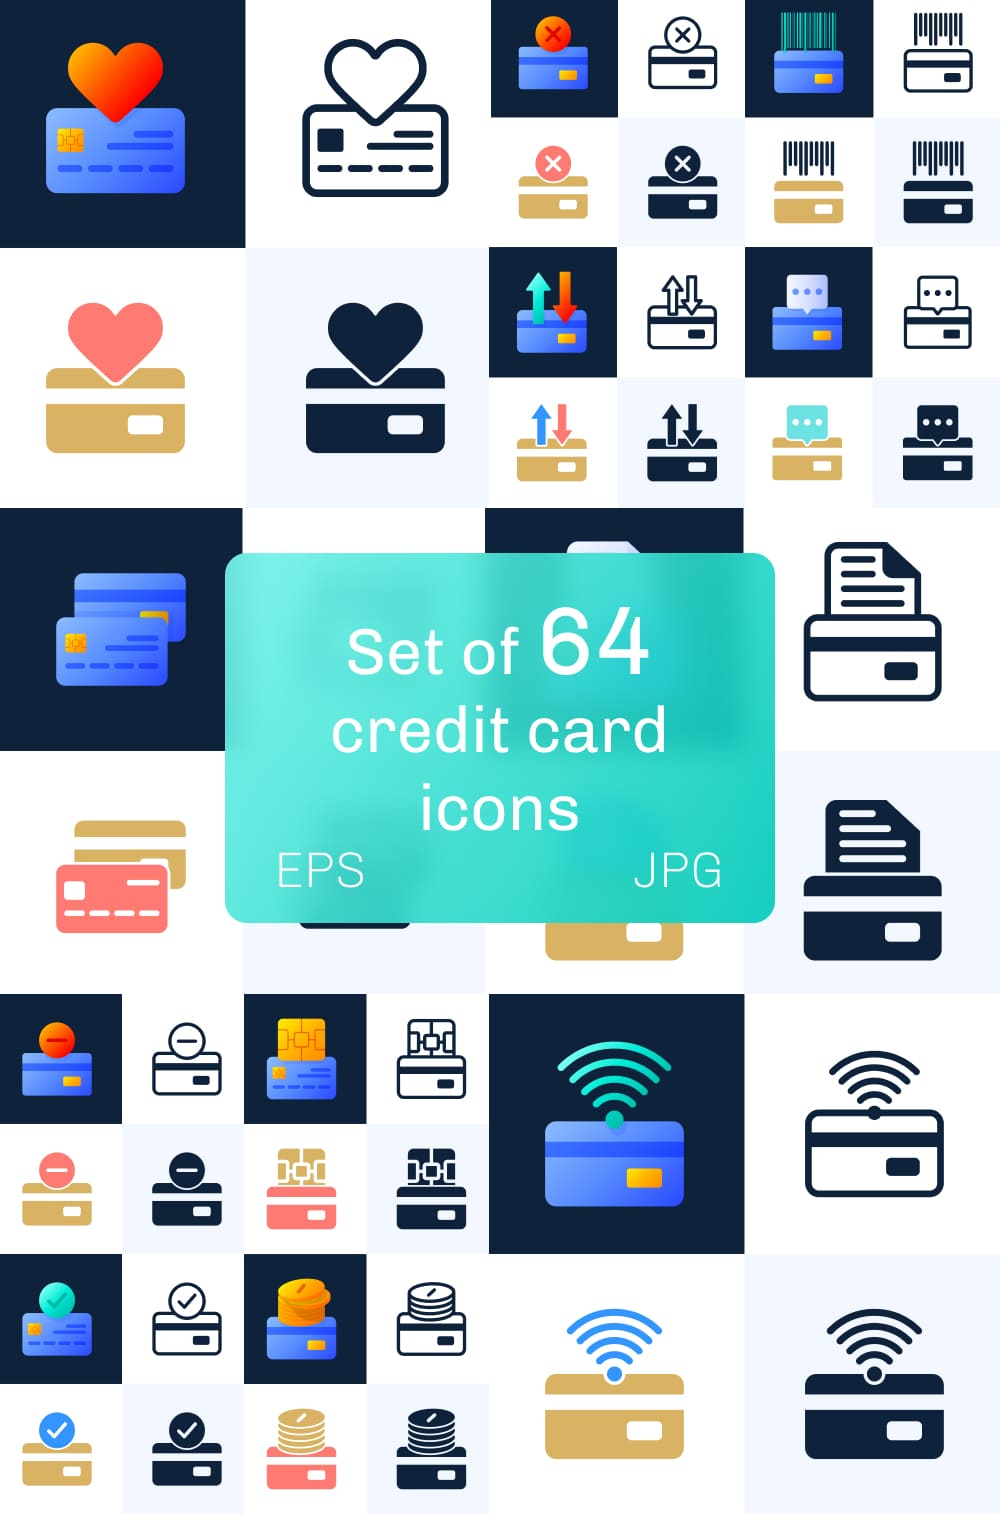 Set of 64 Credit Card Icons Pinterest.